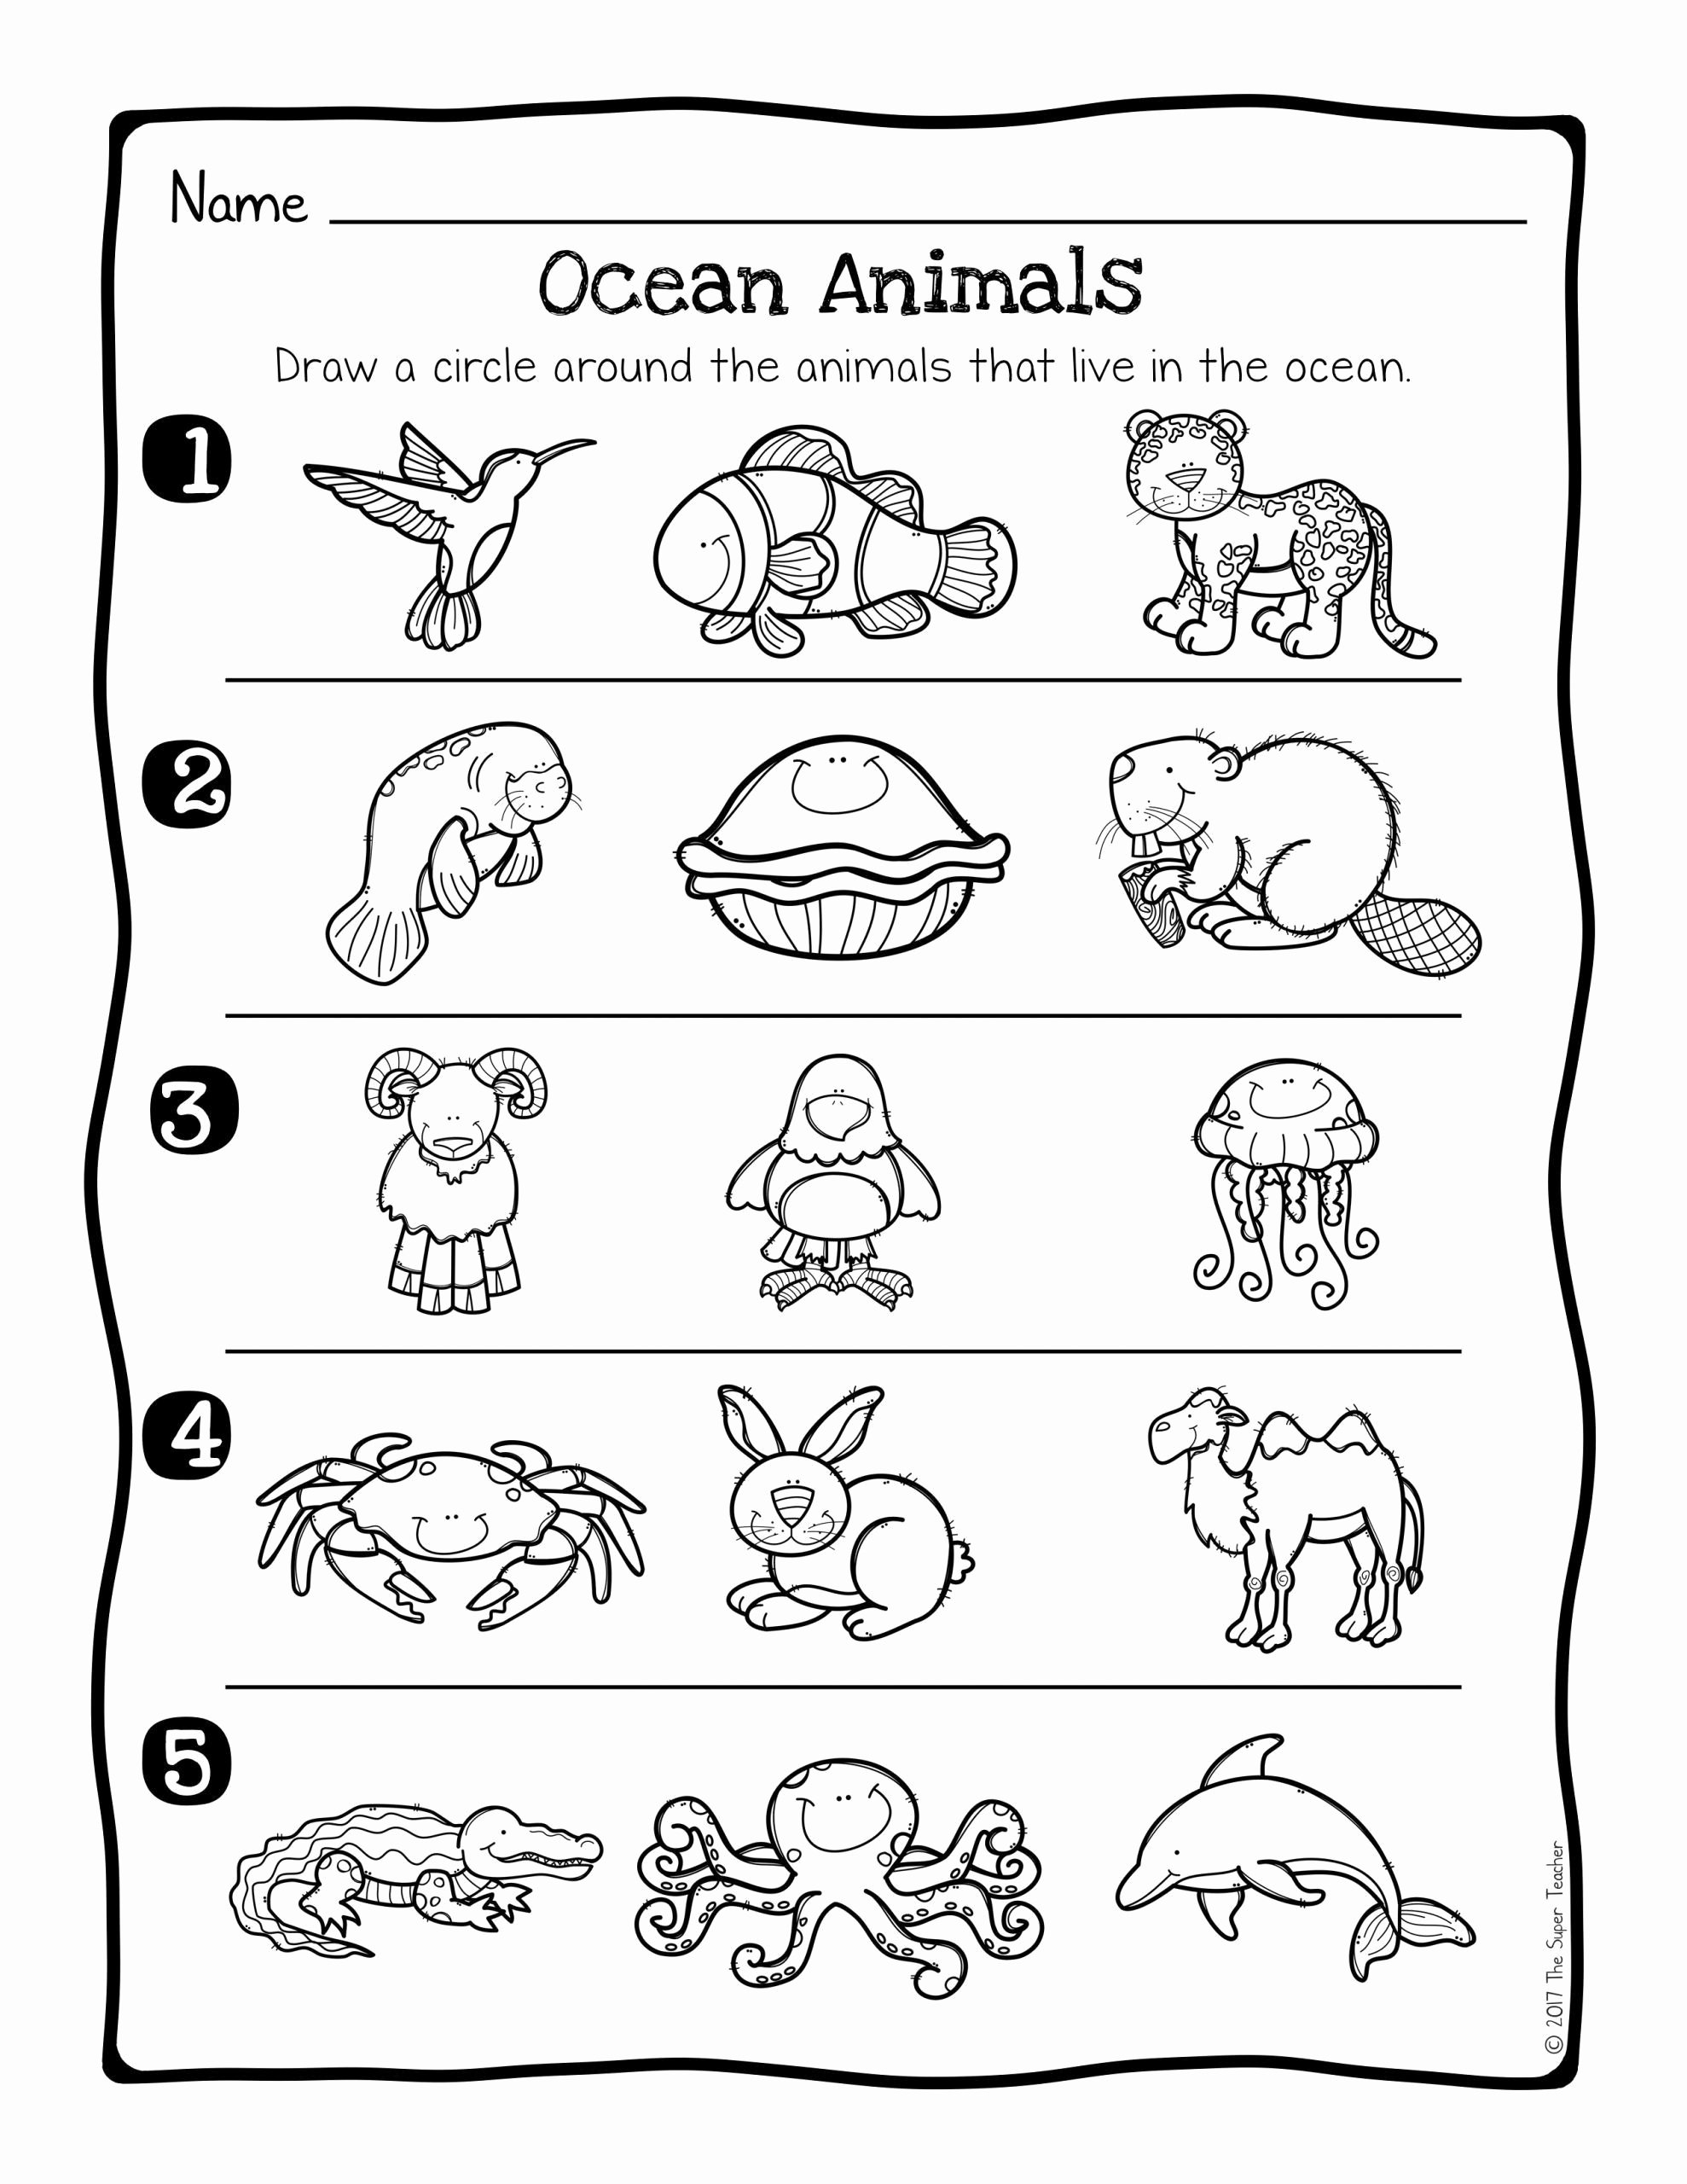 Sea Creatures Worksheets for Preschoolers top Ocean Handwriting Worksheets